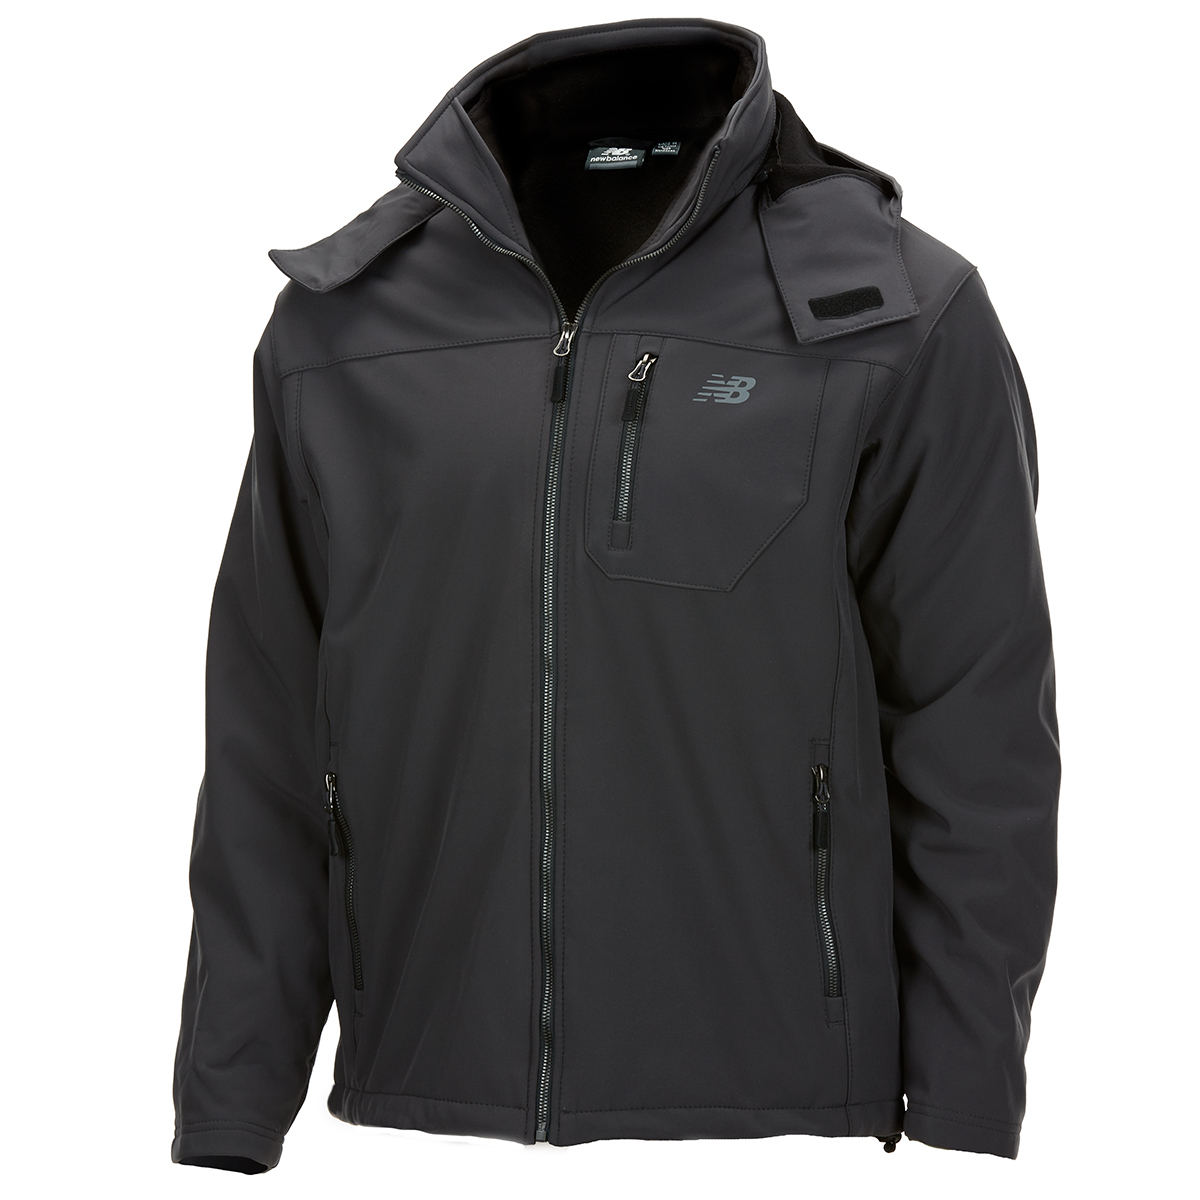 New Balance Men's Soft Shell Systems Jacket With Zip-Out Puffer - Black, XXL